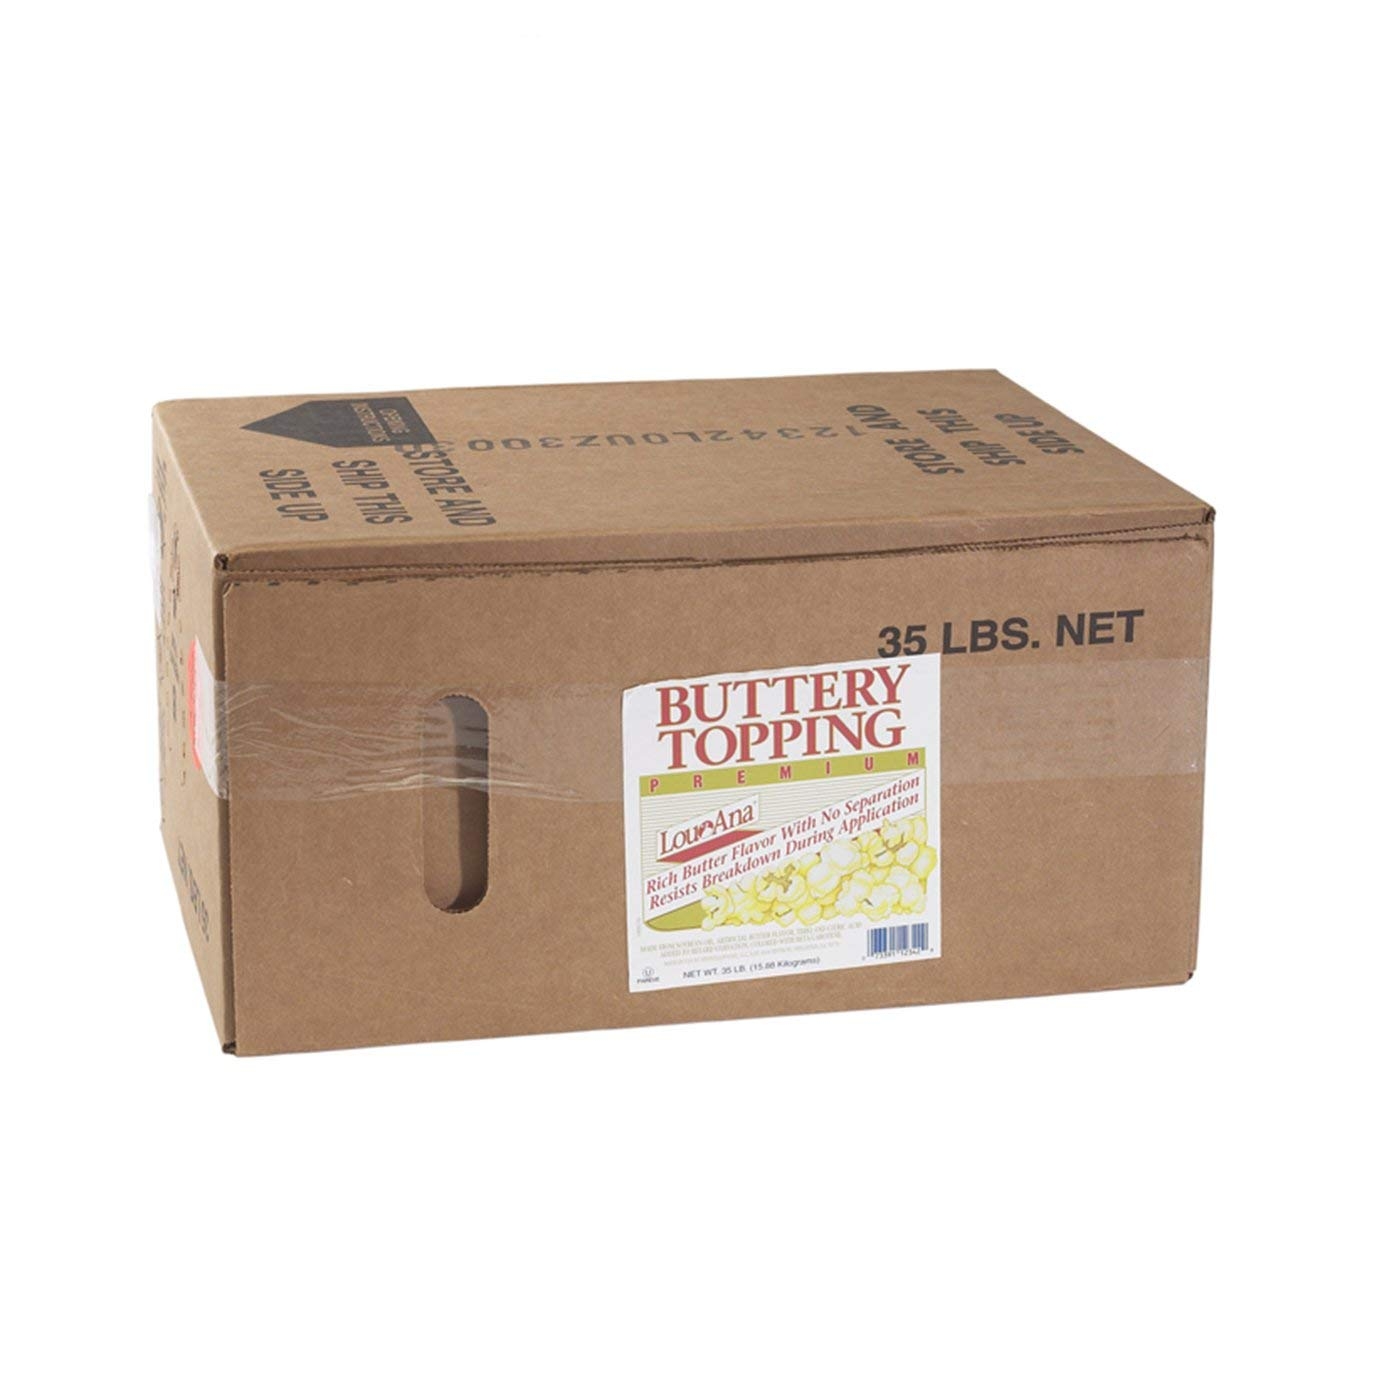 Popcorn Supply   Bag-In-Box Buttery Topping   by Gold Medal 2653   35 lbs